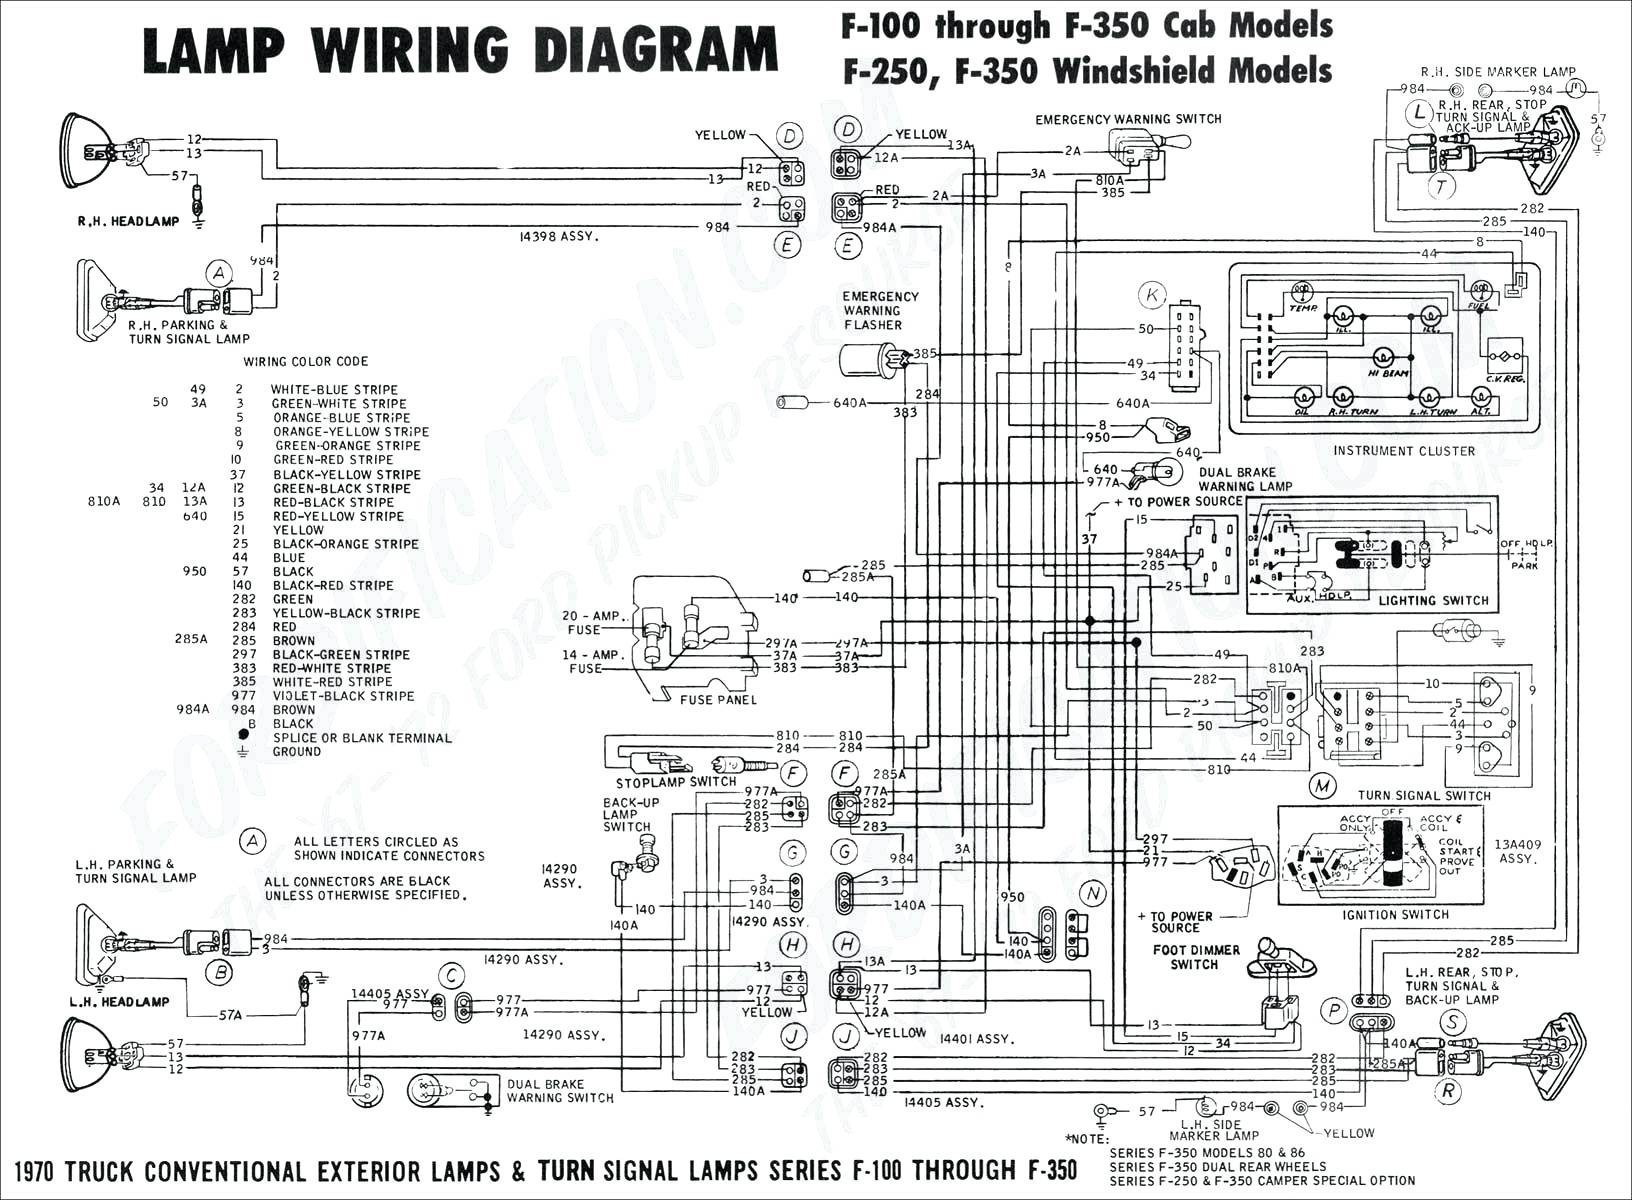 2001 Chevy Silverado Wiring Diagram Ignition Starter Switch Wiring Diagram Best Ignition Switch Wiring Of 2001 Chevy Silverado Wiring Diagram